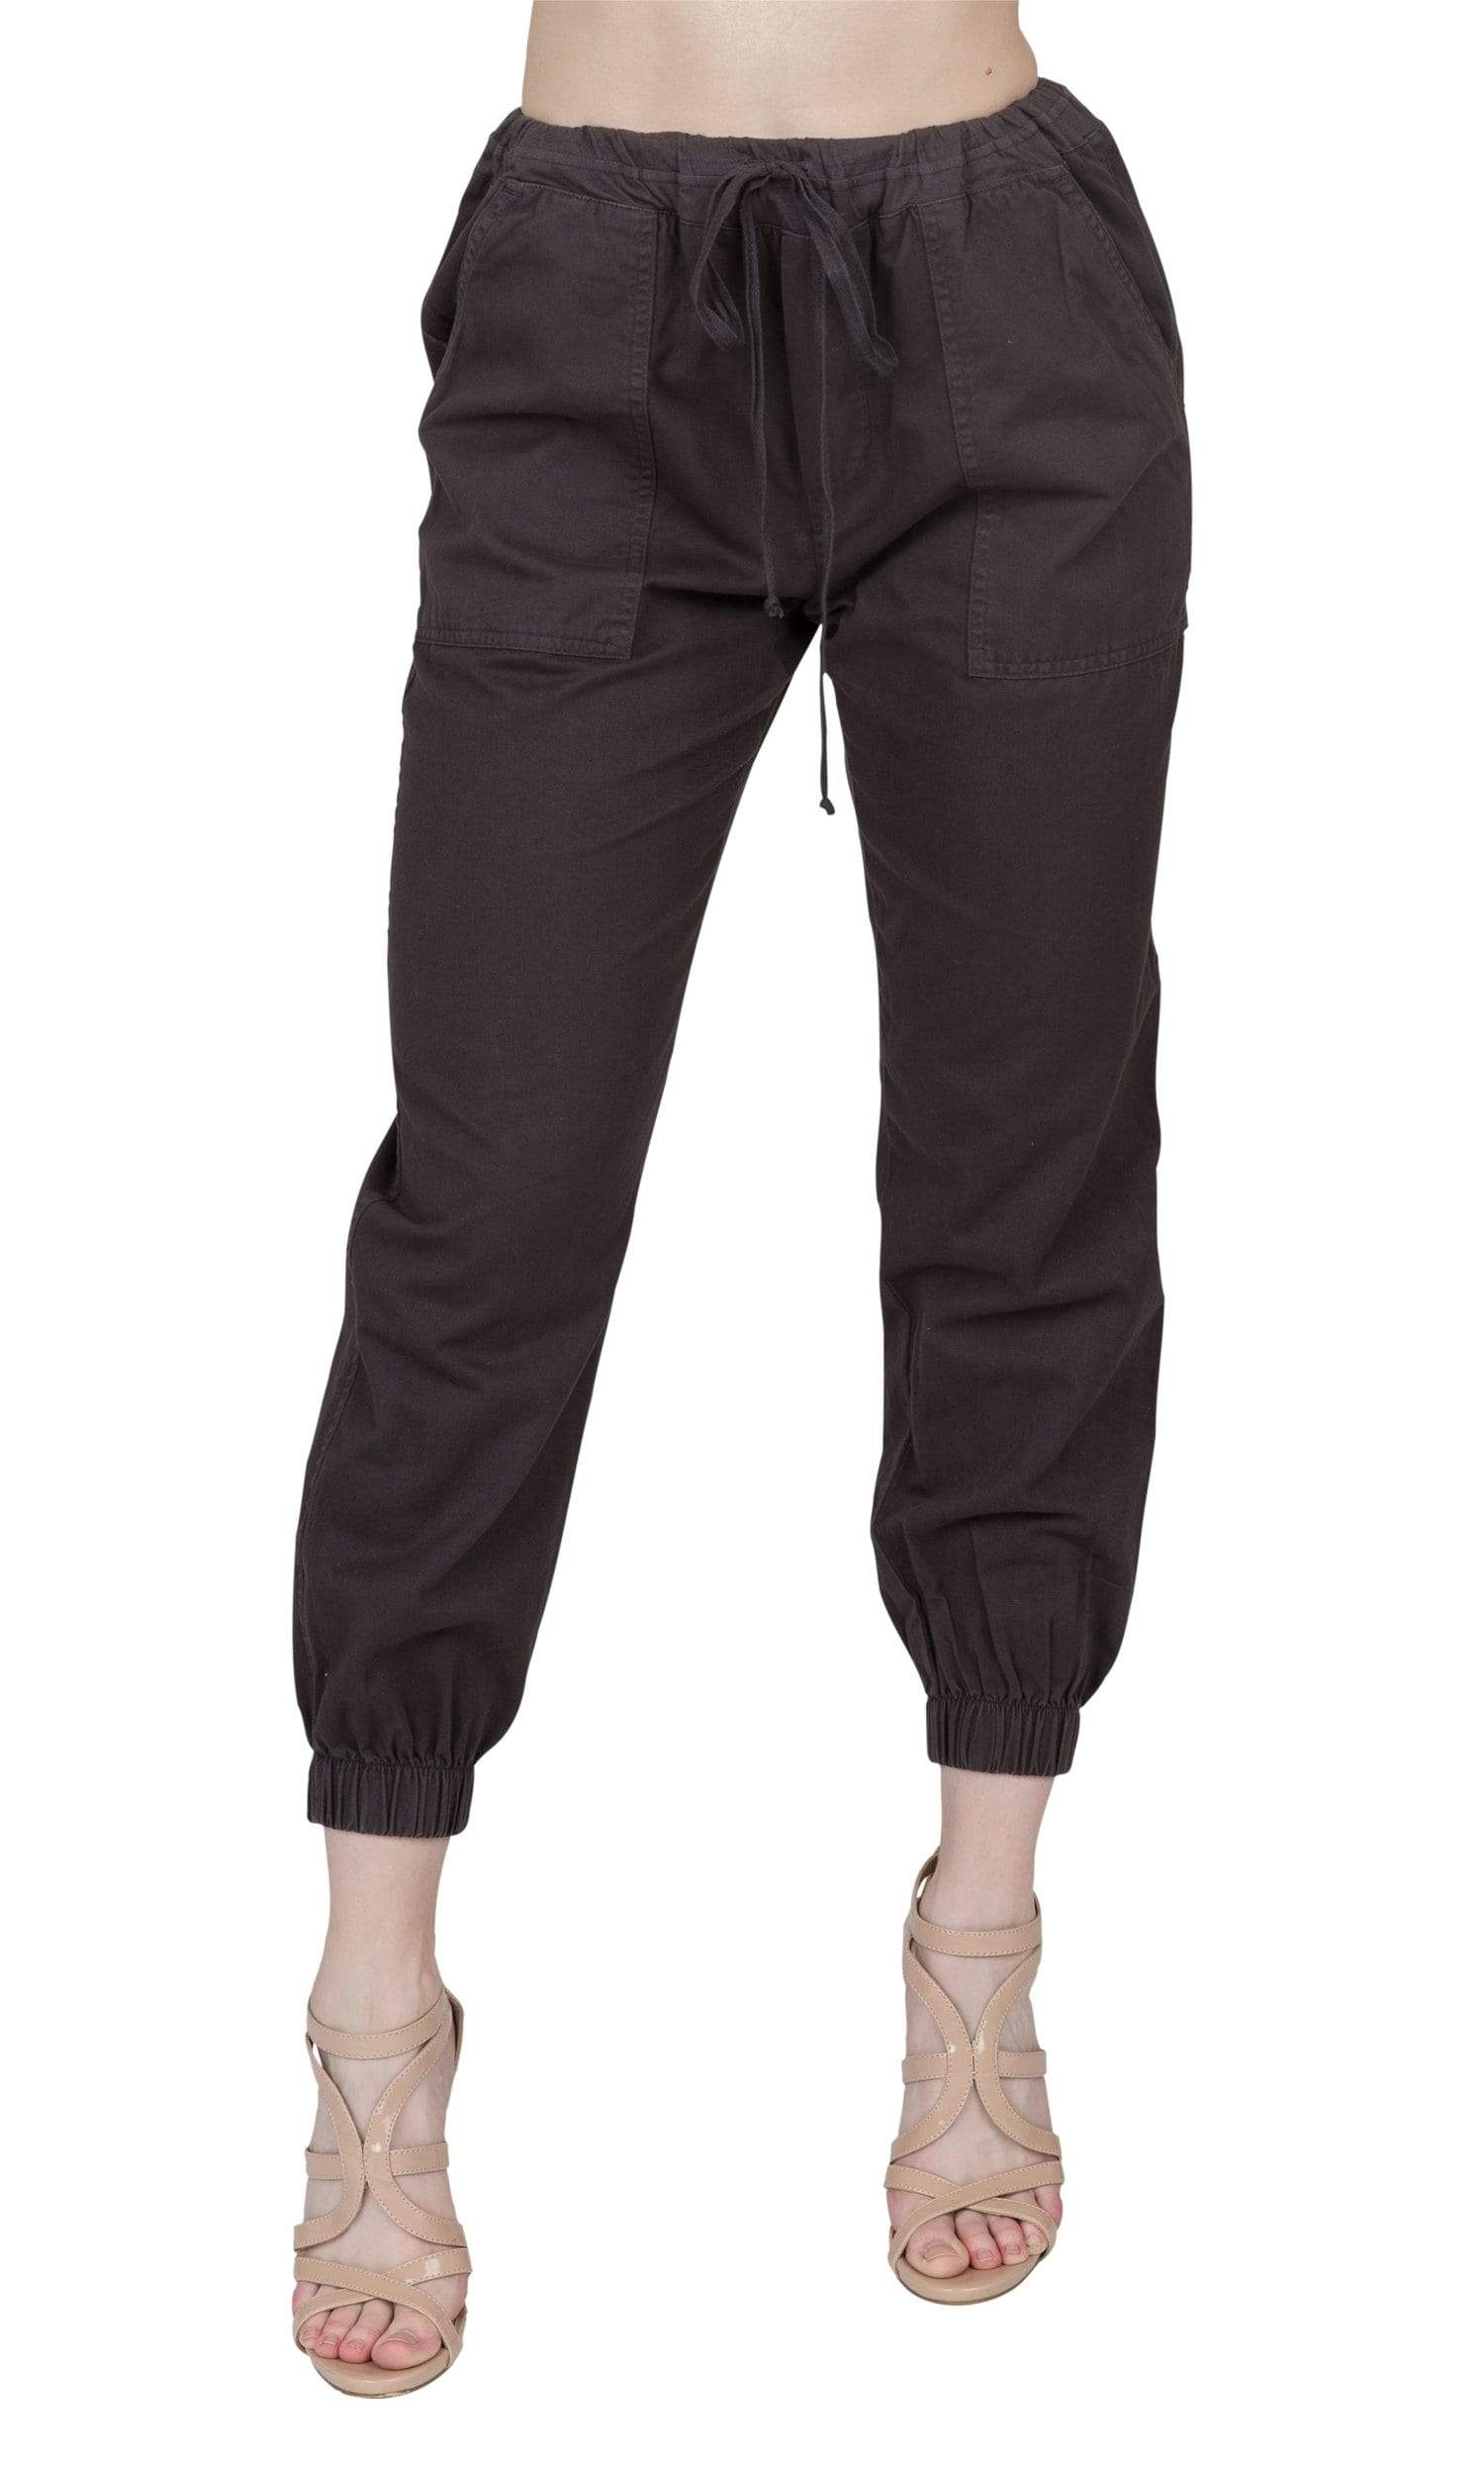 Velvet by Graham & Spencer Ilsa Cotton Twill Cuffed Pant